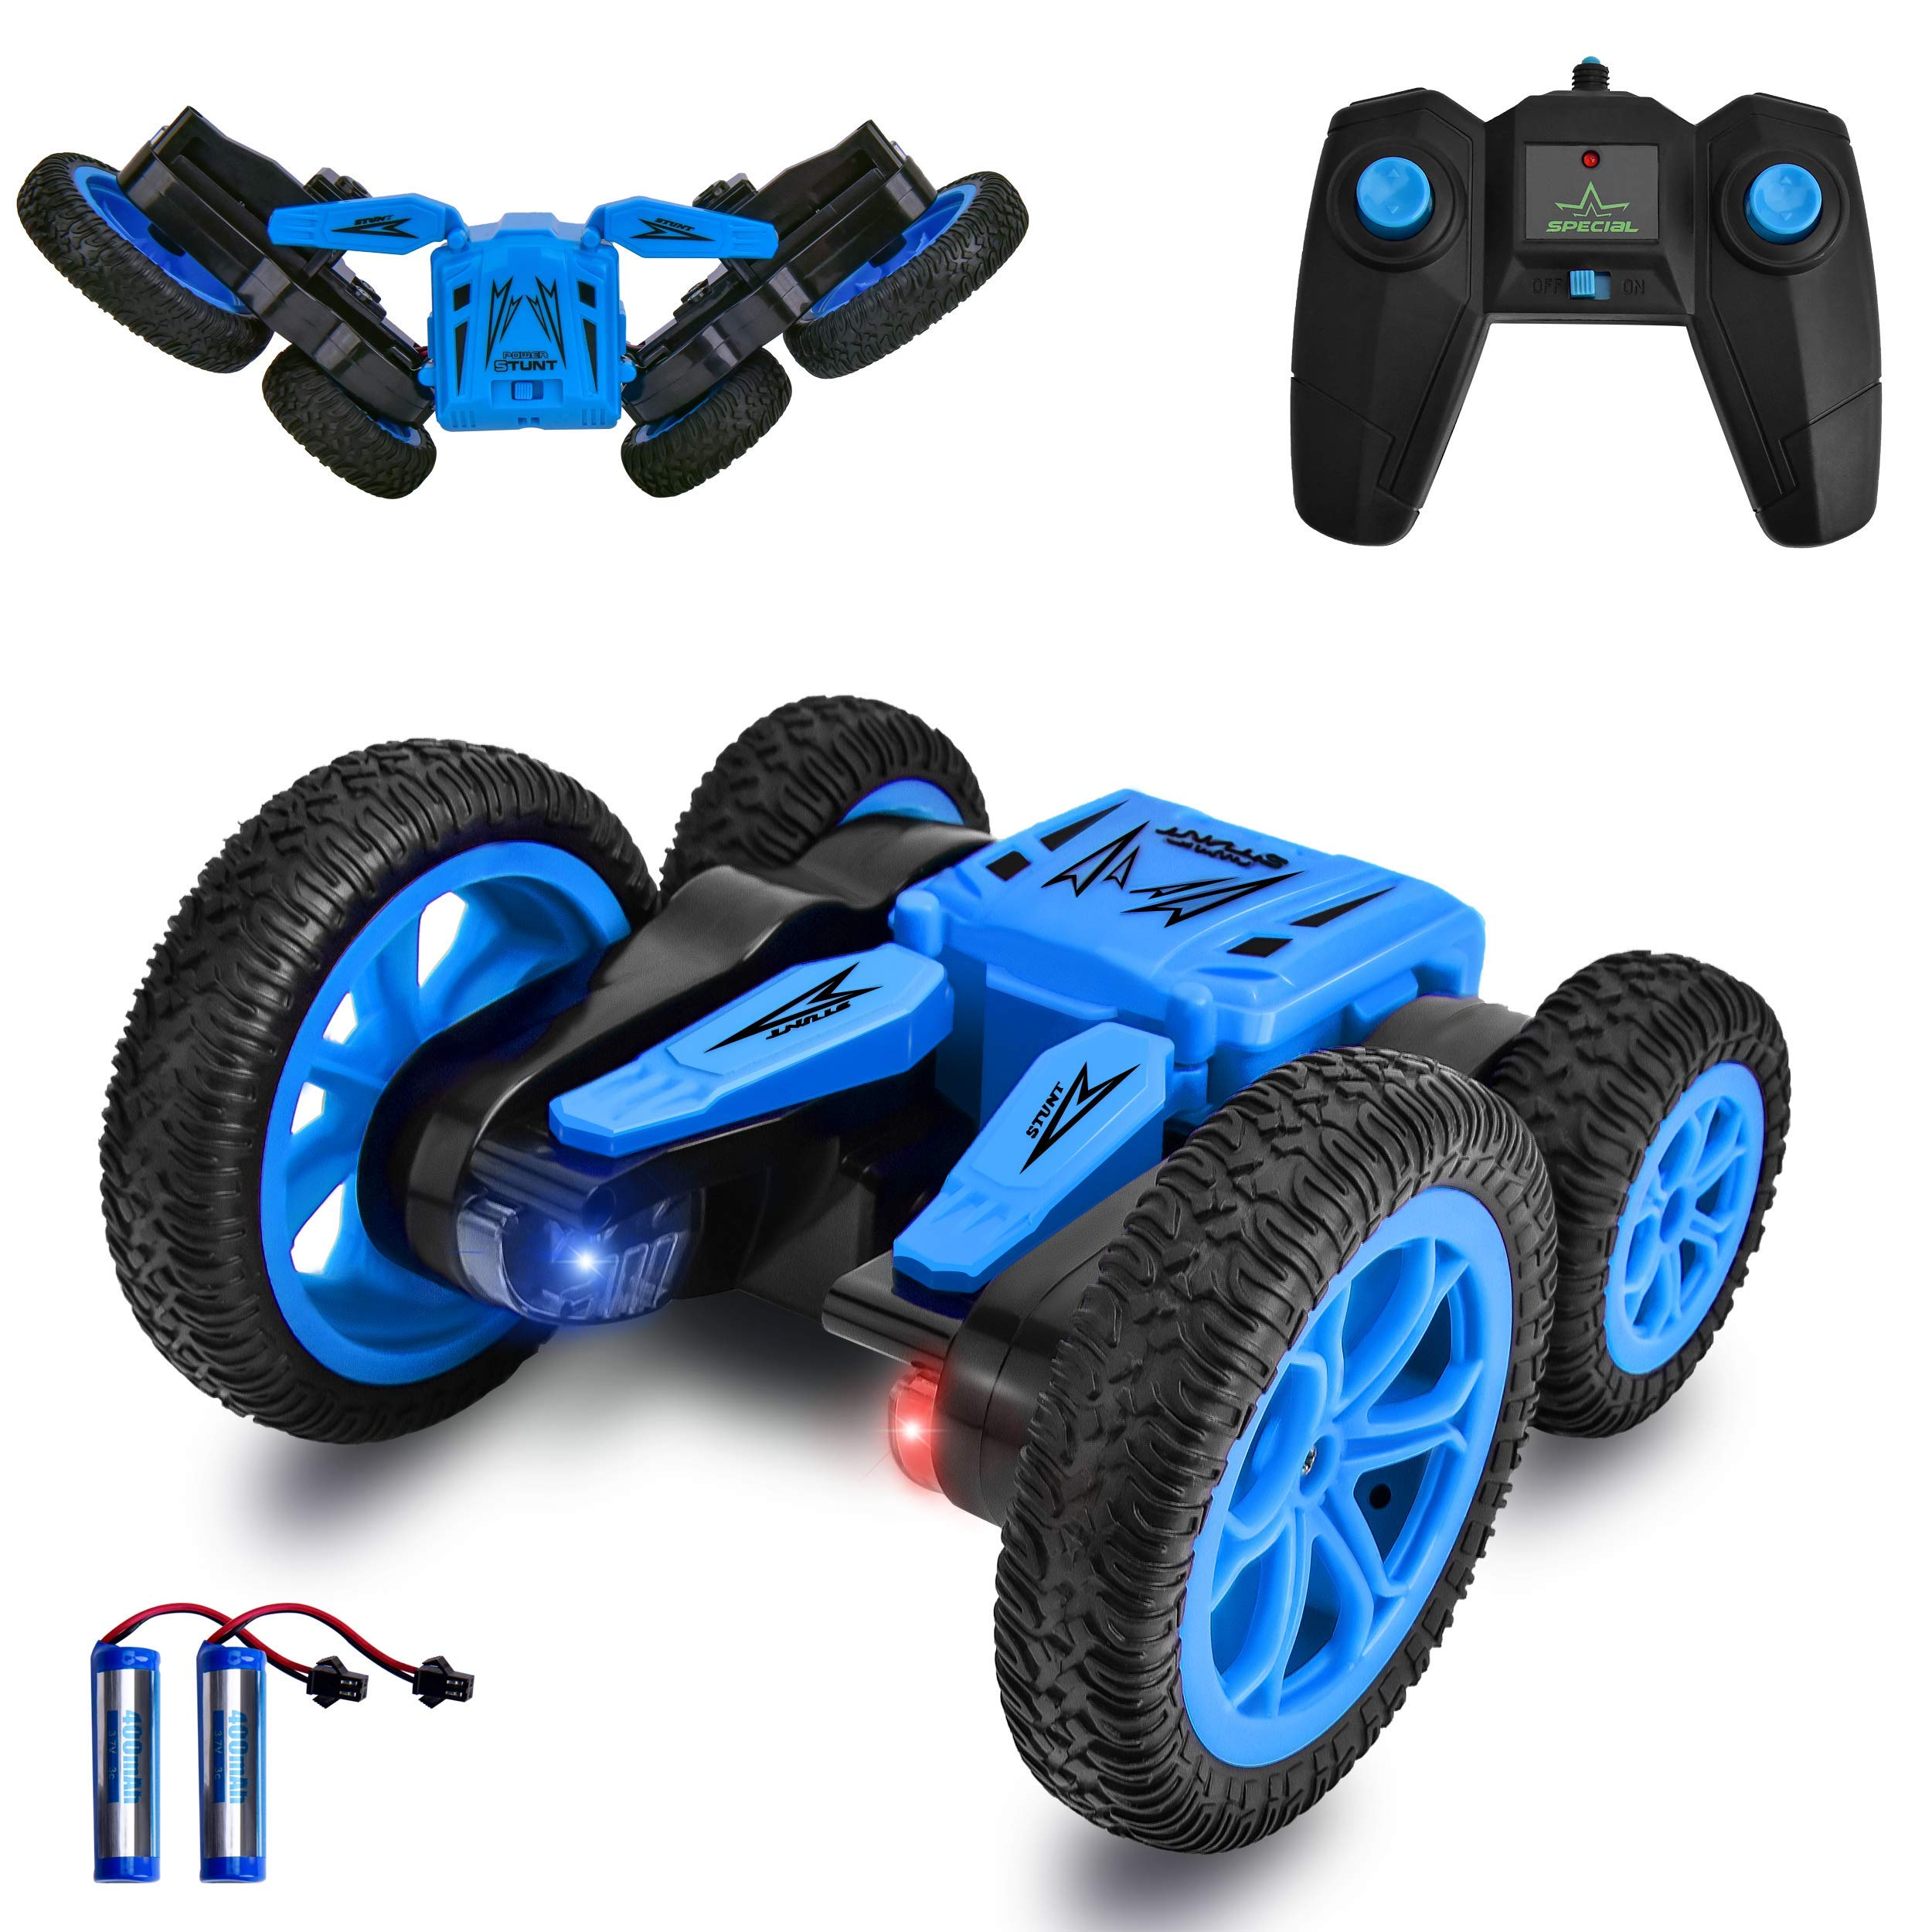 Remote Control Car 4WD RC Stunt Cars Toys for Kids Double Sided Rotating 360°Flips Off Road RC Truck Racing Car Toy Xmas Gifts for 3 4 5 6 7 8 9 Year Old Boys 2 Batteries (Blue)